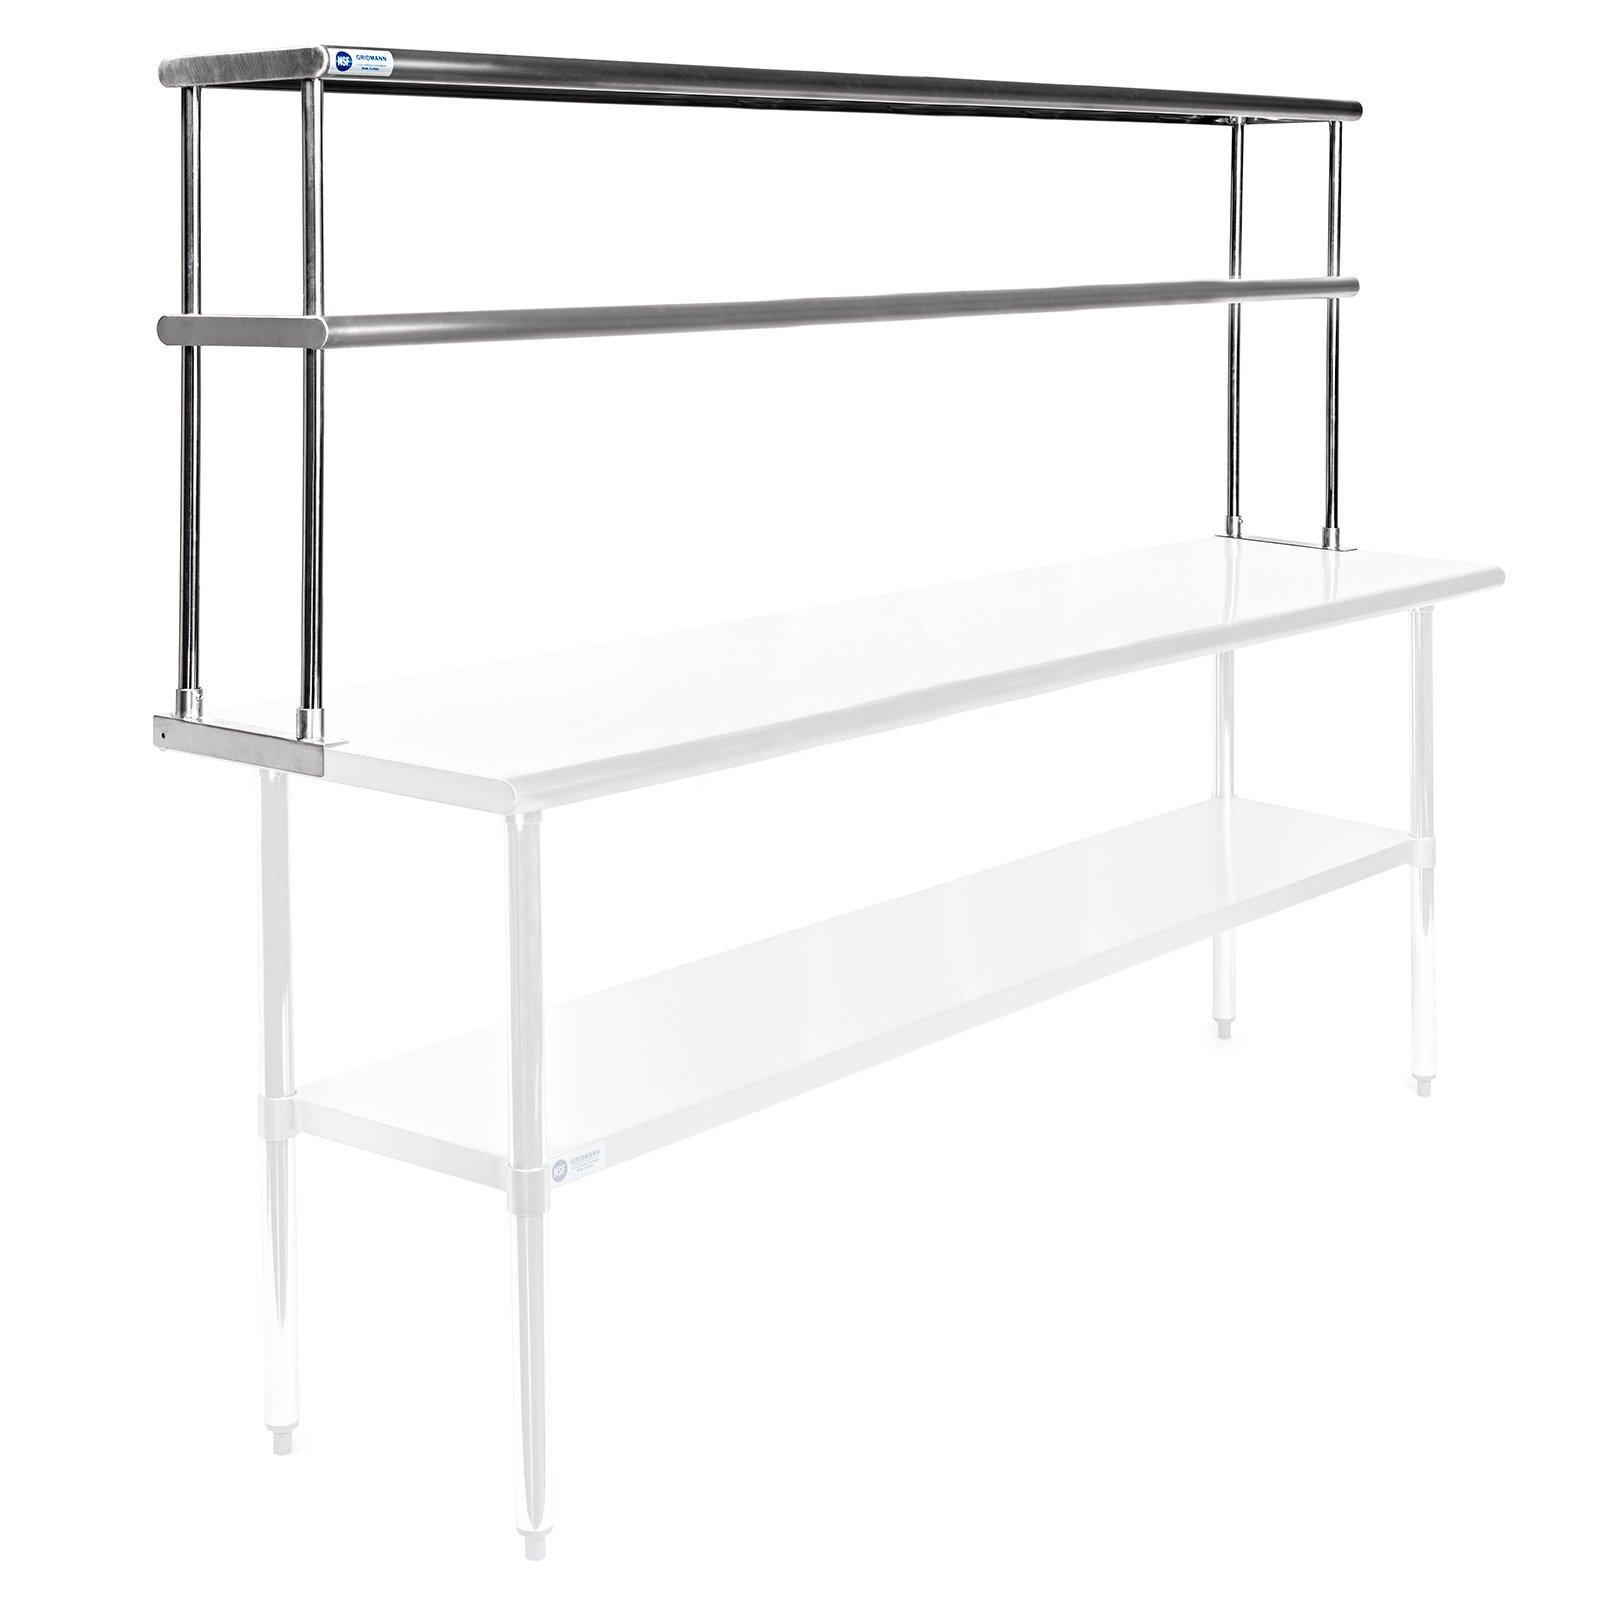 Gridmann NSF Stainless Steel Commercial Kitchen Prep & Work Table 2 Tier Double Overshelf - 72 in. x 12 in.